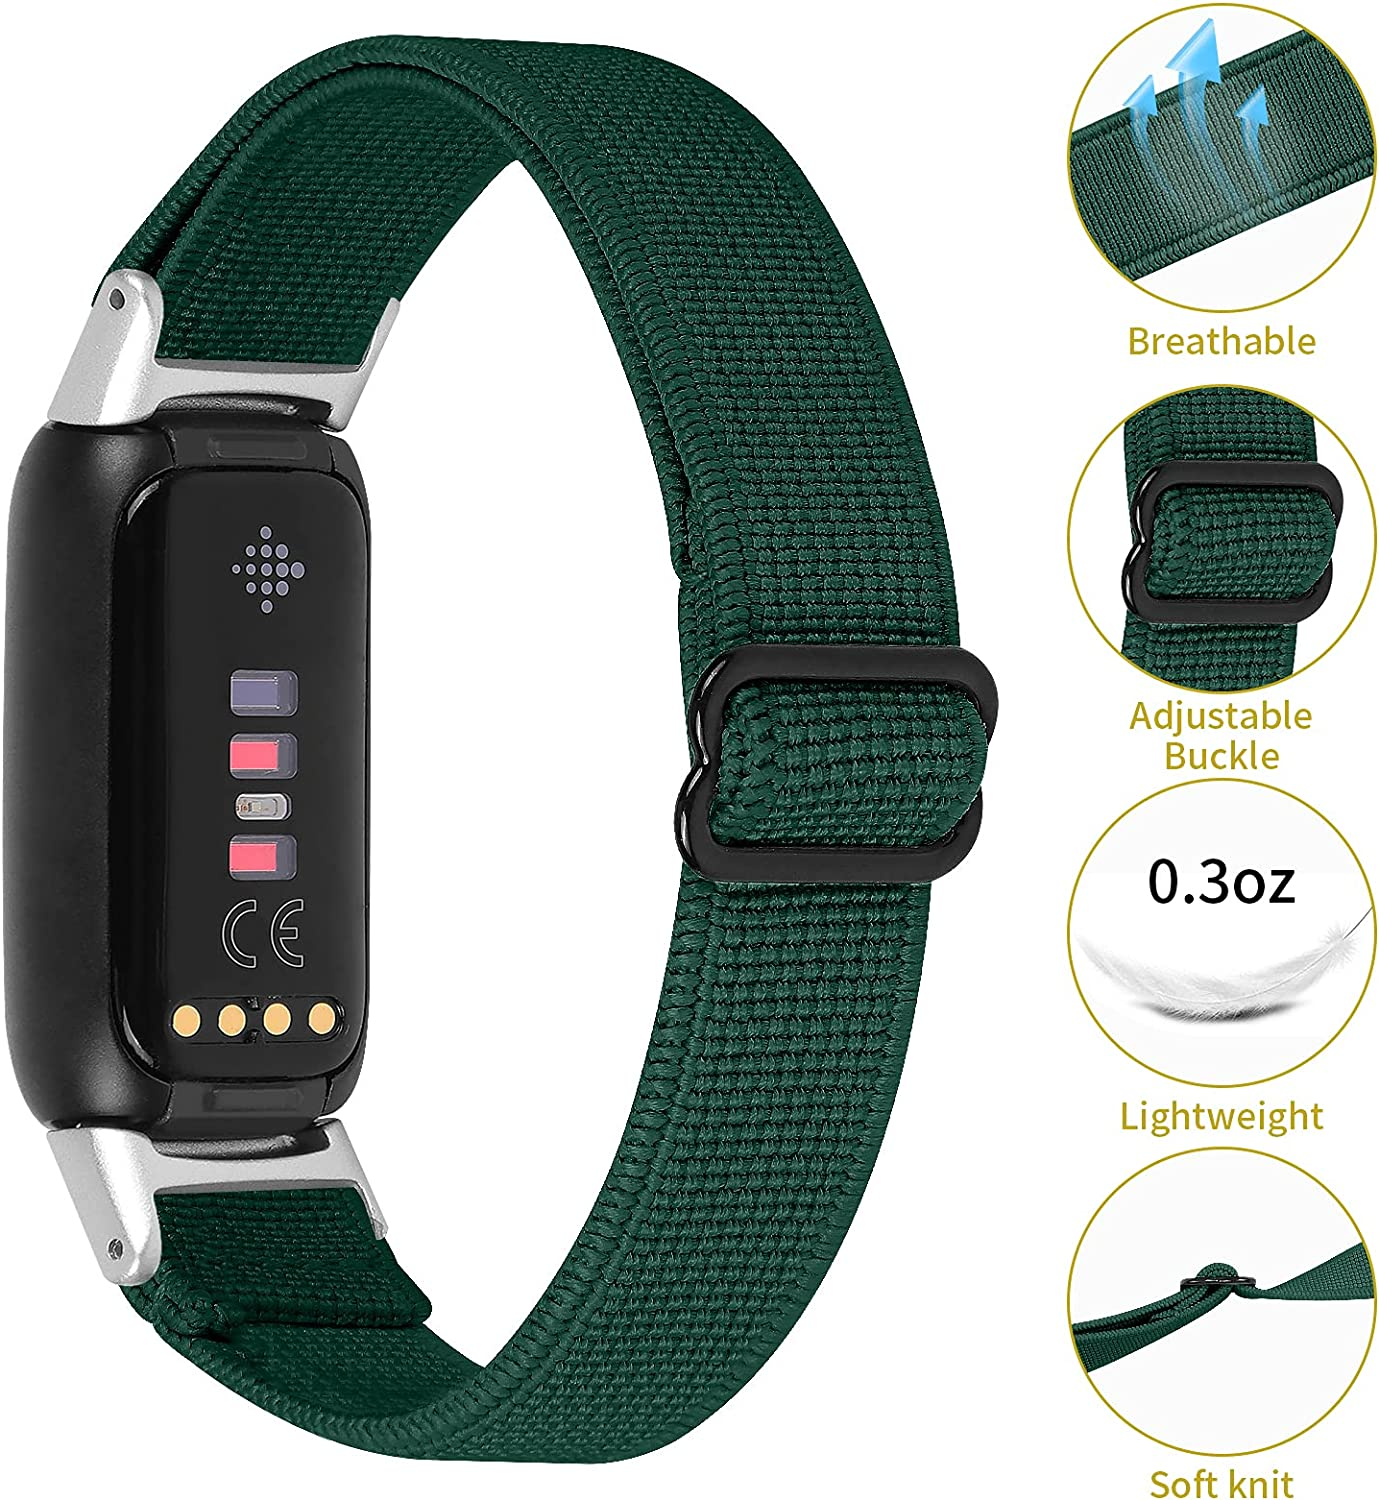 Mtozon Adjustable Elastic Bands Compatible with Fitbit Luxe, Replacement Stretchy Nylon Loop Skin-Friendly Strap Soft Wristbands for Women Men